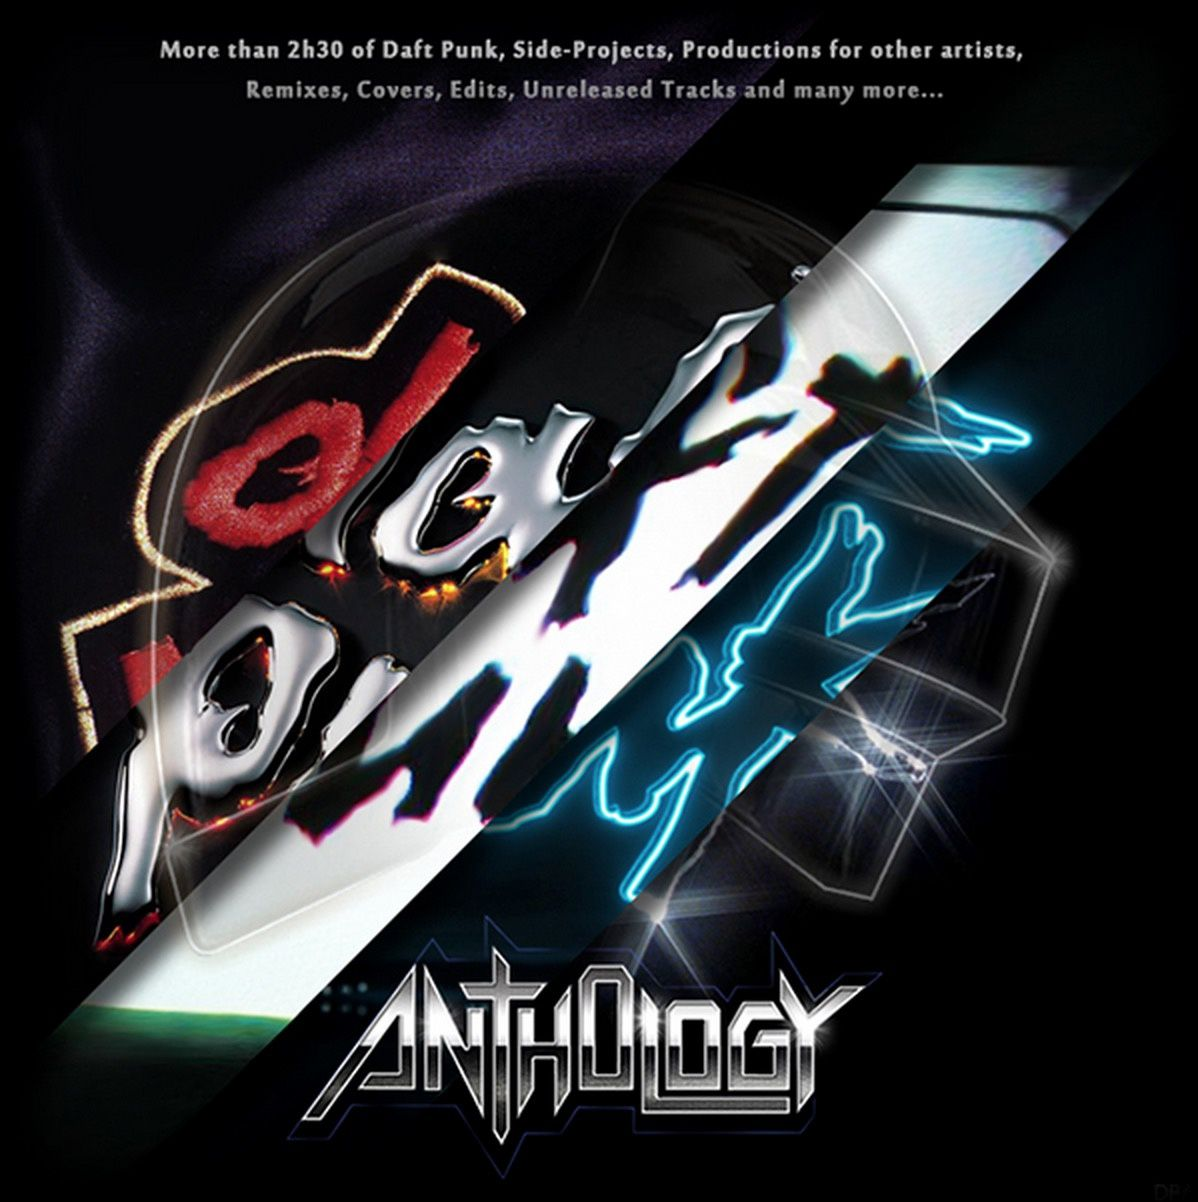 La Mixtape Daft Punk Anthology